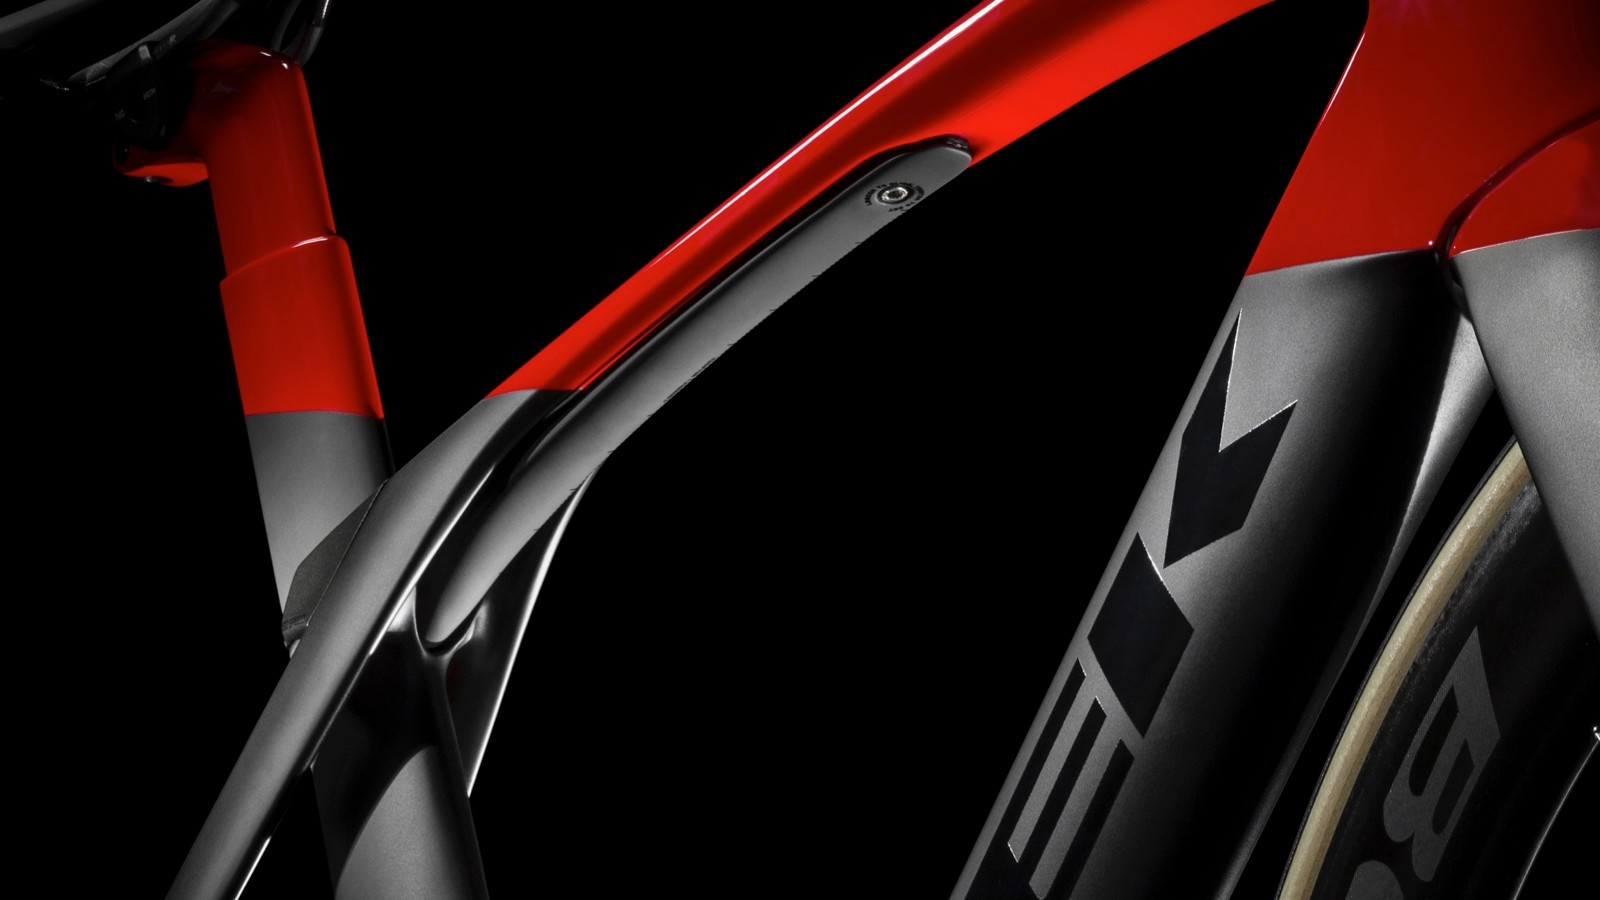 The new Madone SLR has an adjustable IsoSpeed under the top tube with an elastomer damper in the seat tube